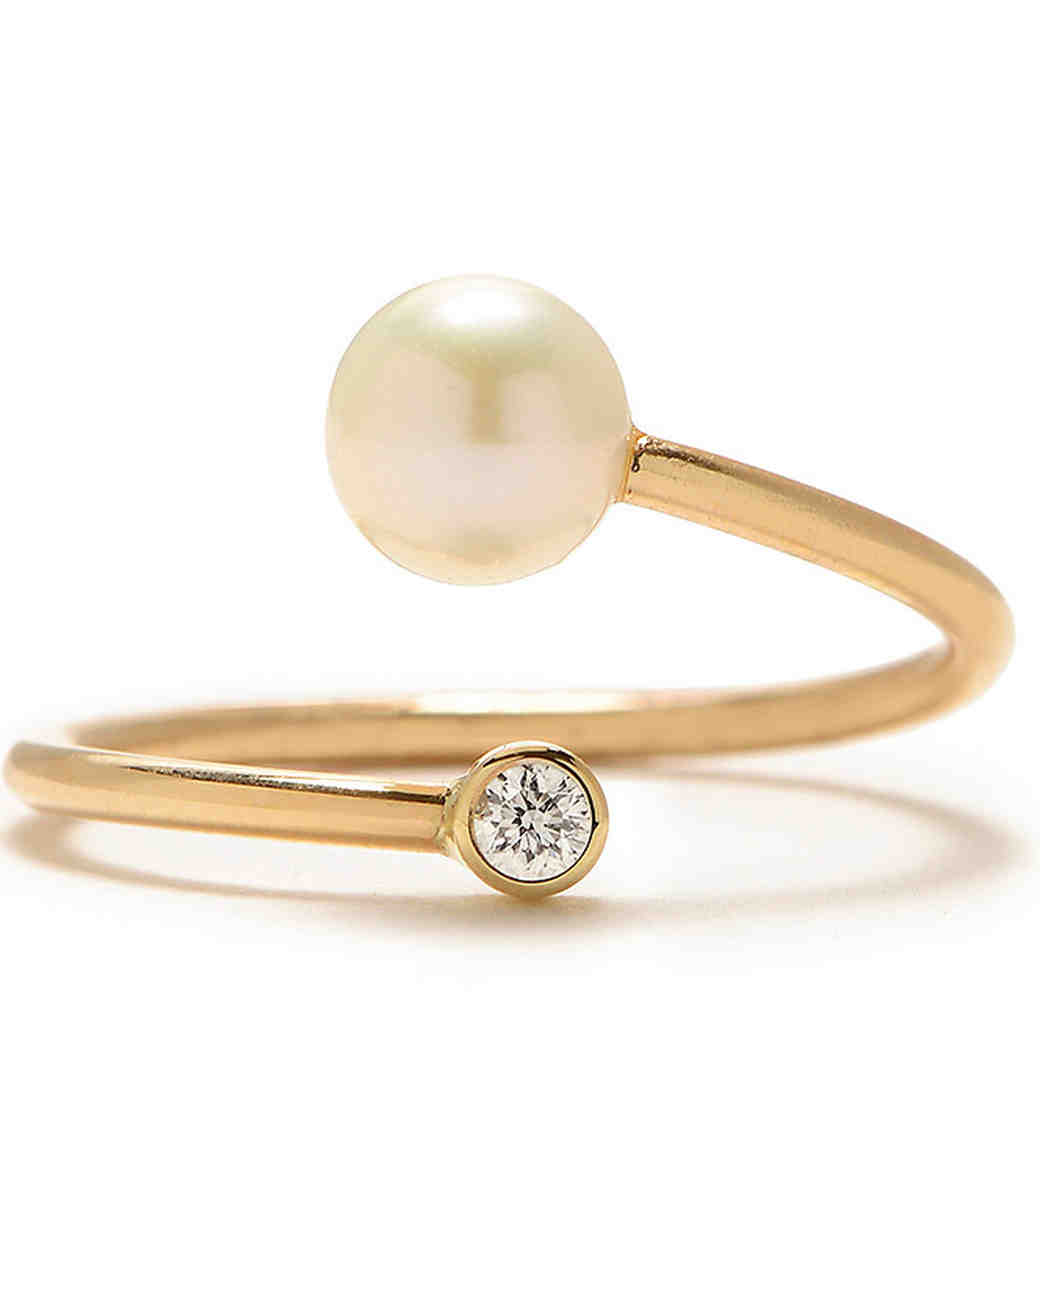 diamonds rings fairtrade pearl pin with diamond ring pearls and made bespoke gold engagement from